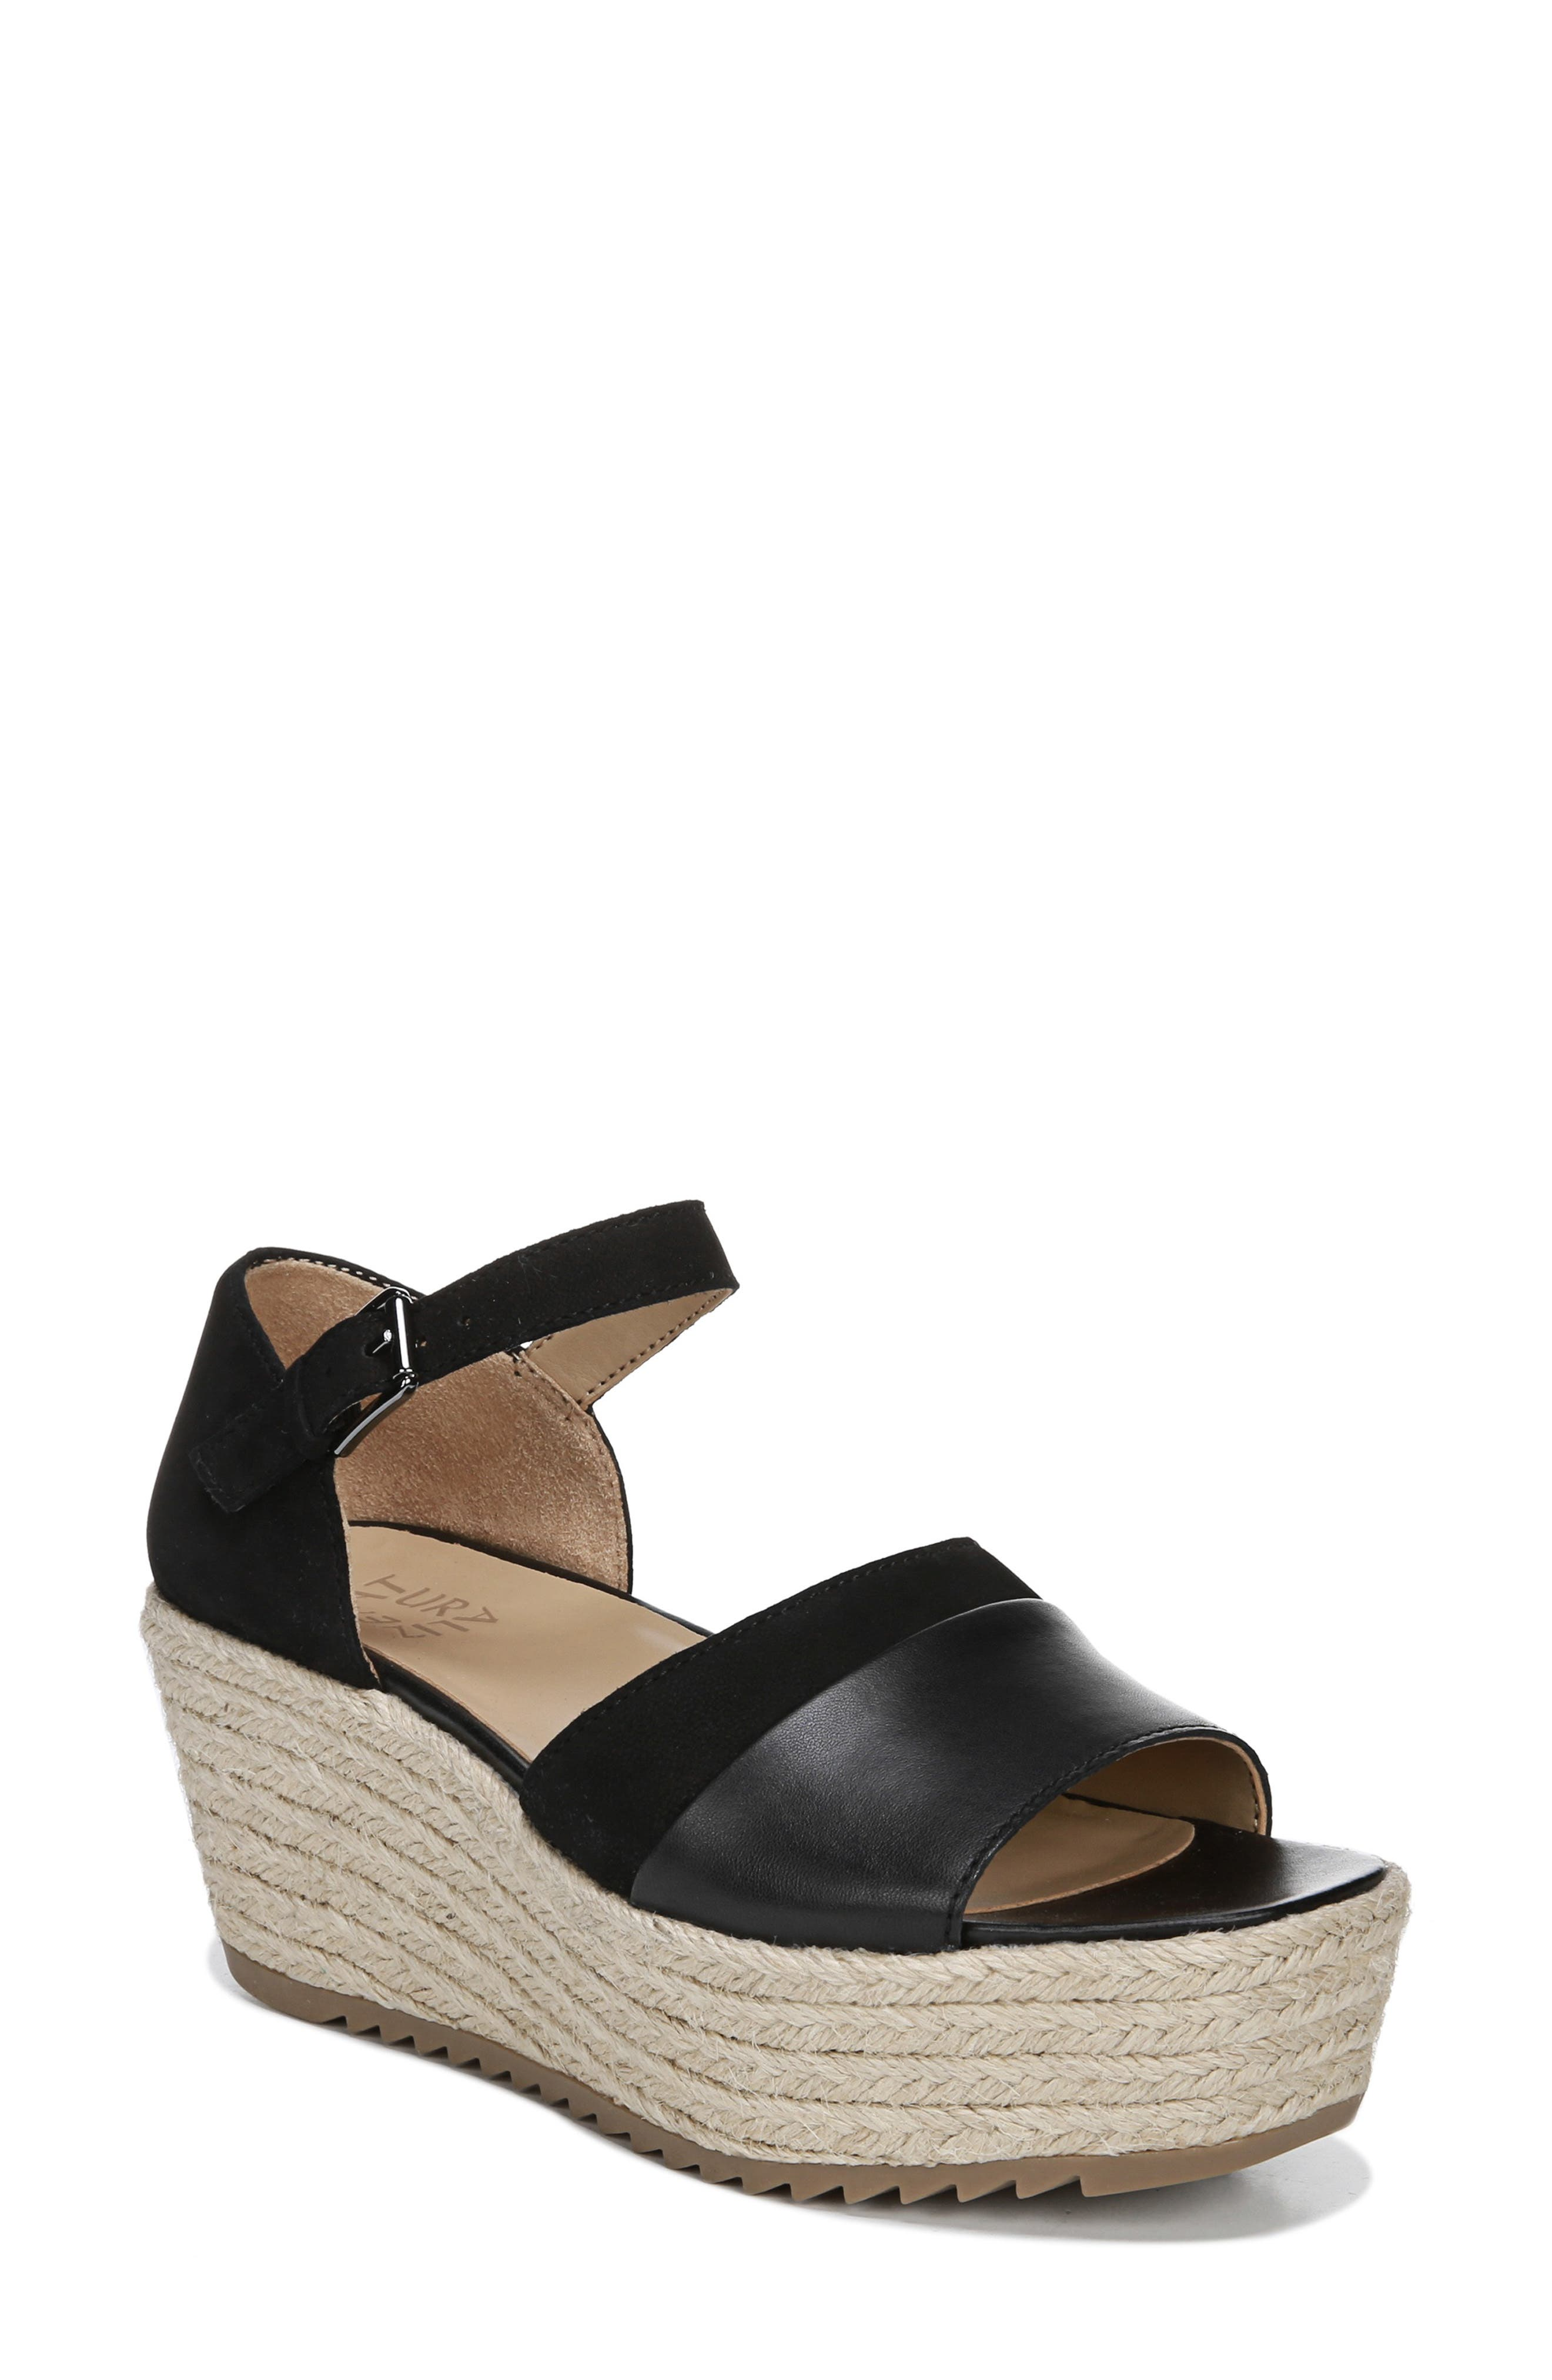 NATURALIZER, Opal Espadrille Platform Wedge Sandal, Main thumbnail 1, color, BLACK LEATHER